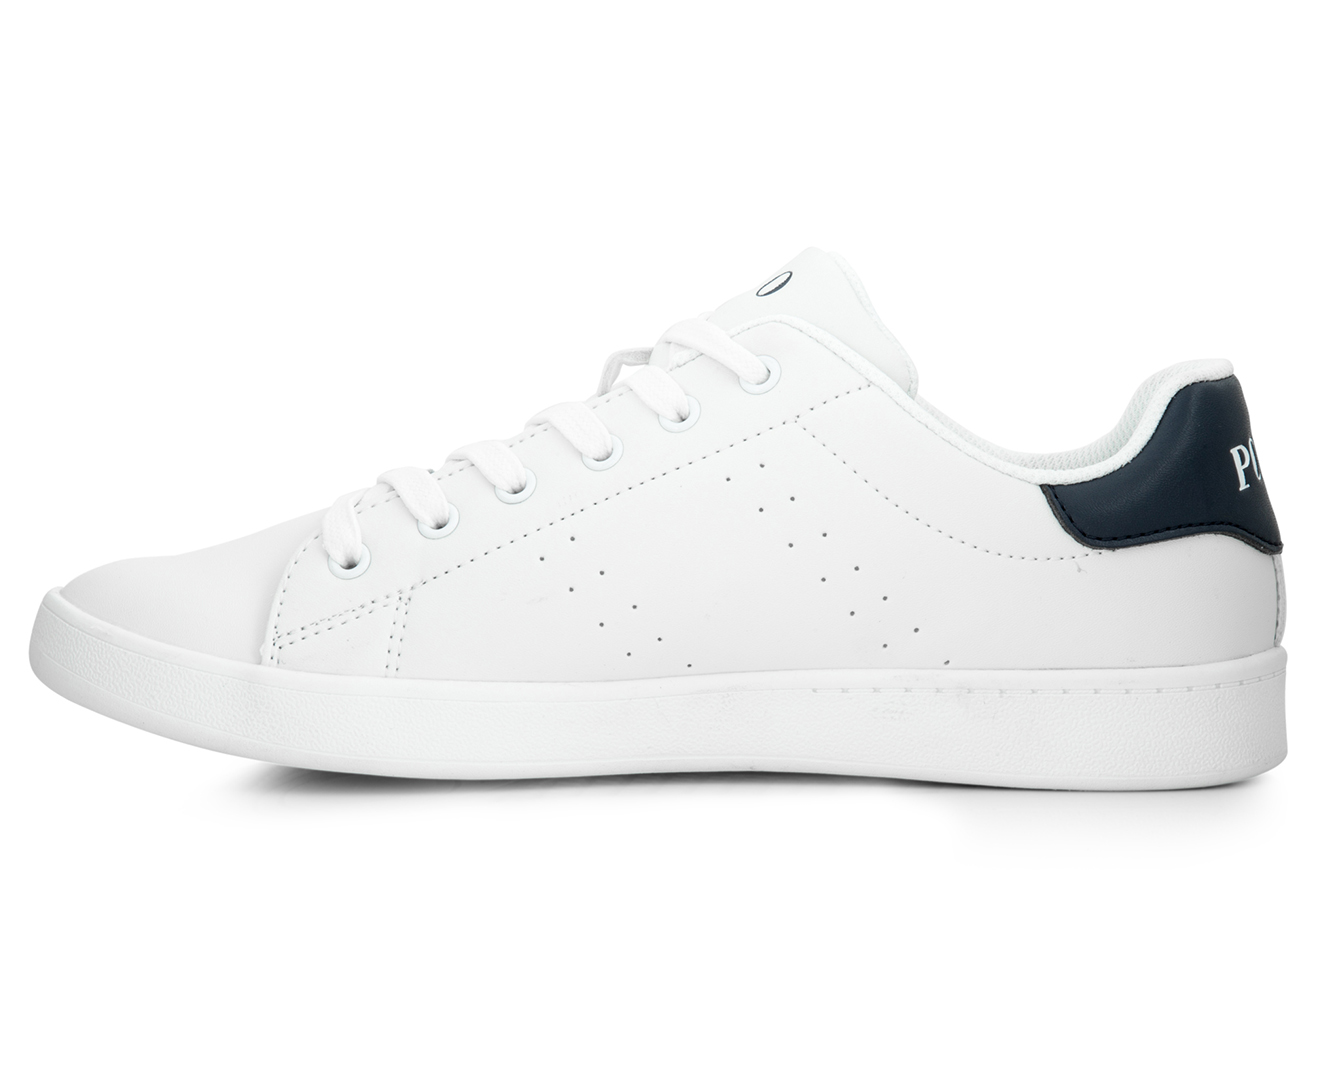 dade458a Polo Ralph Lauren Kids' Quincey Court Shoe - White/Navy | Catch.com.au